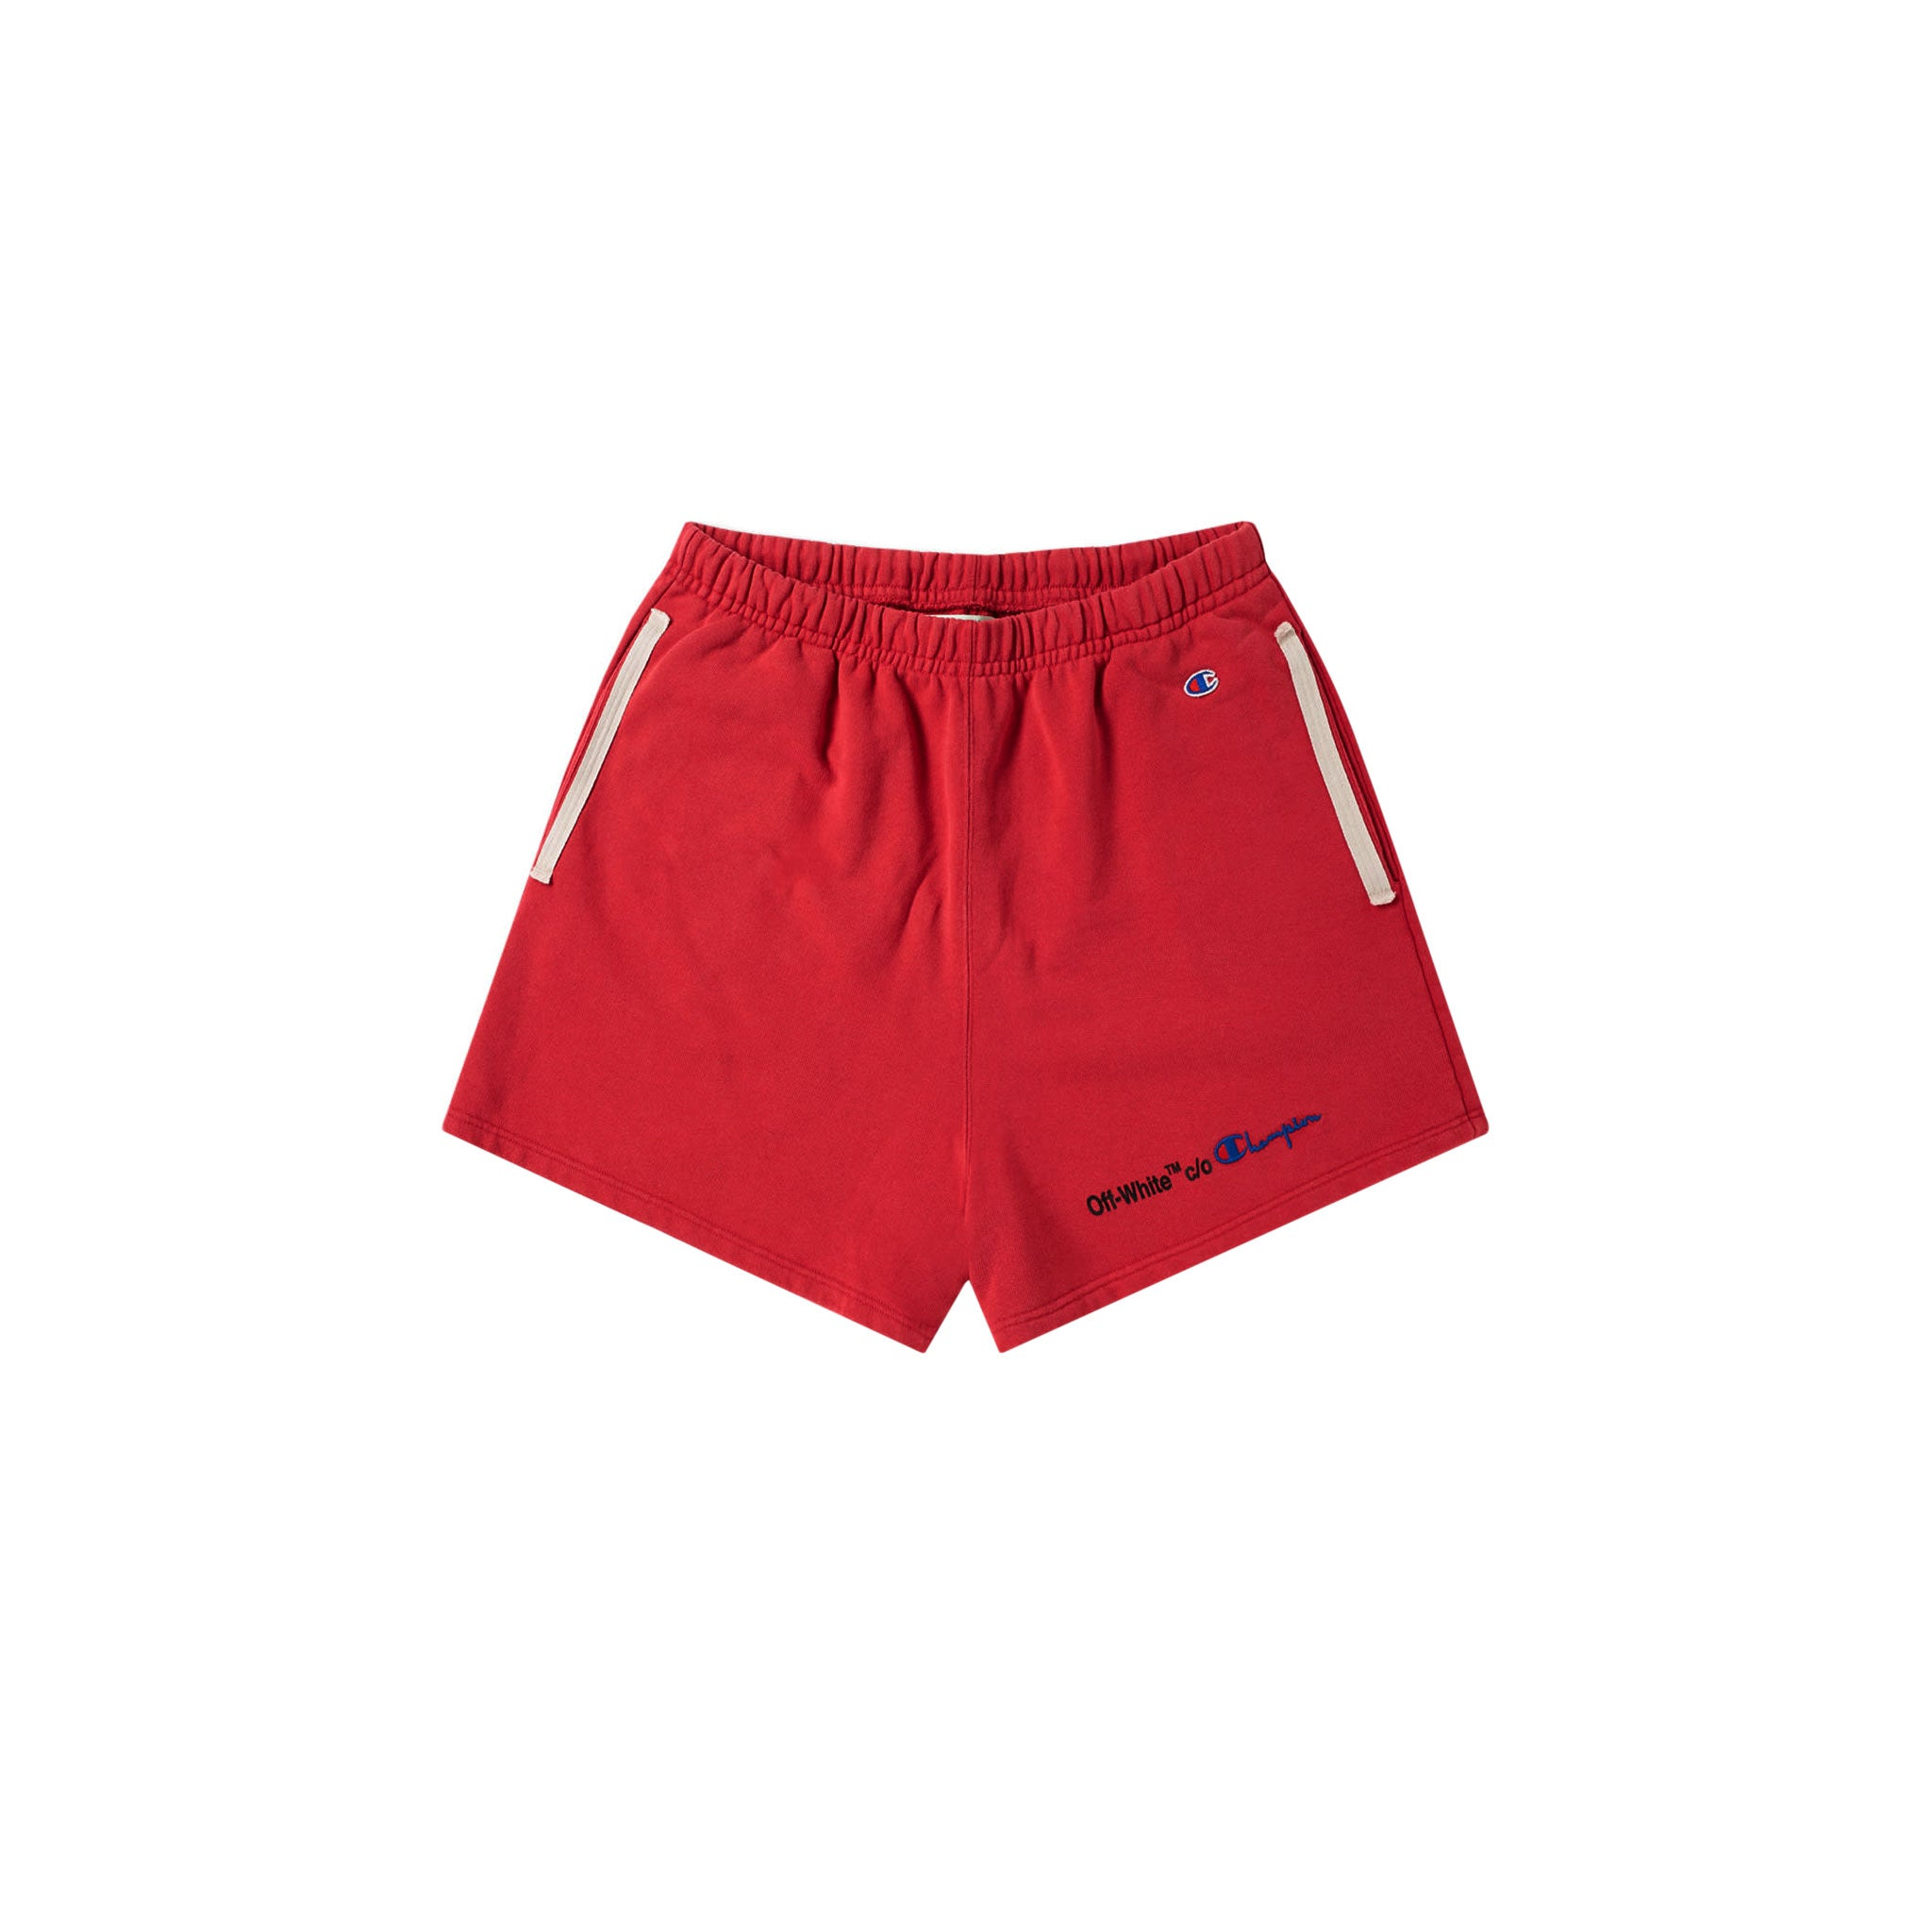 CHAMPION SHORTS - RED